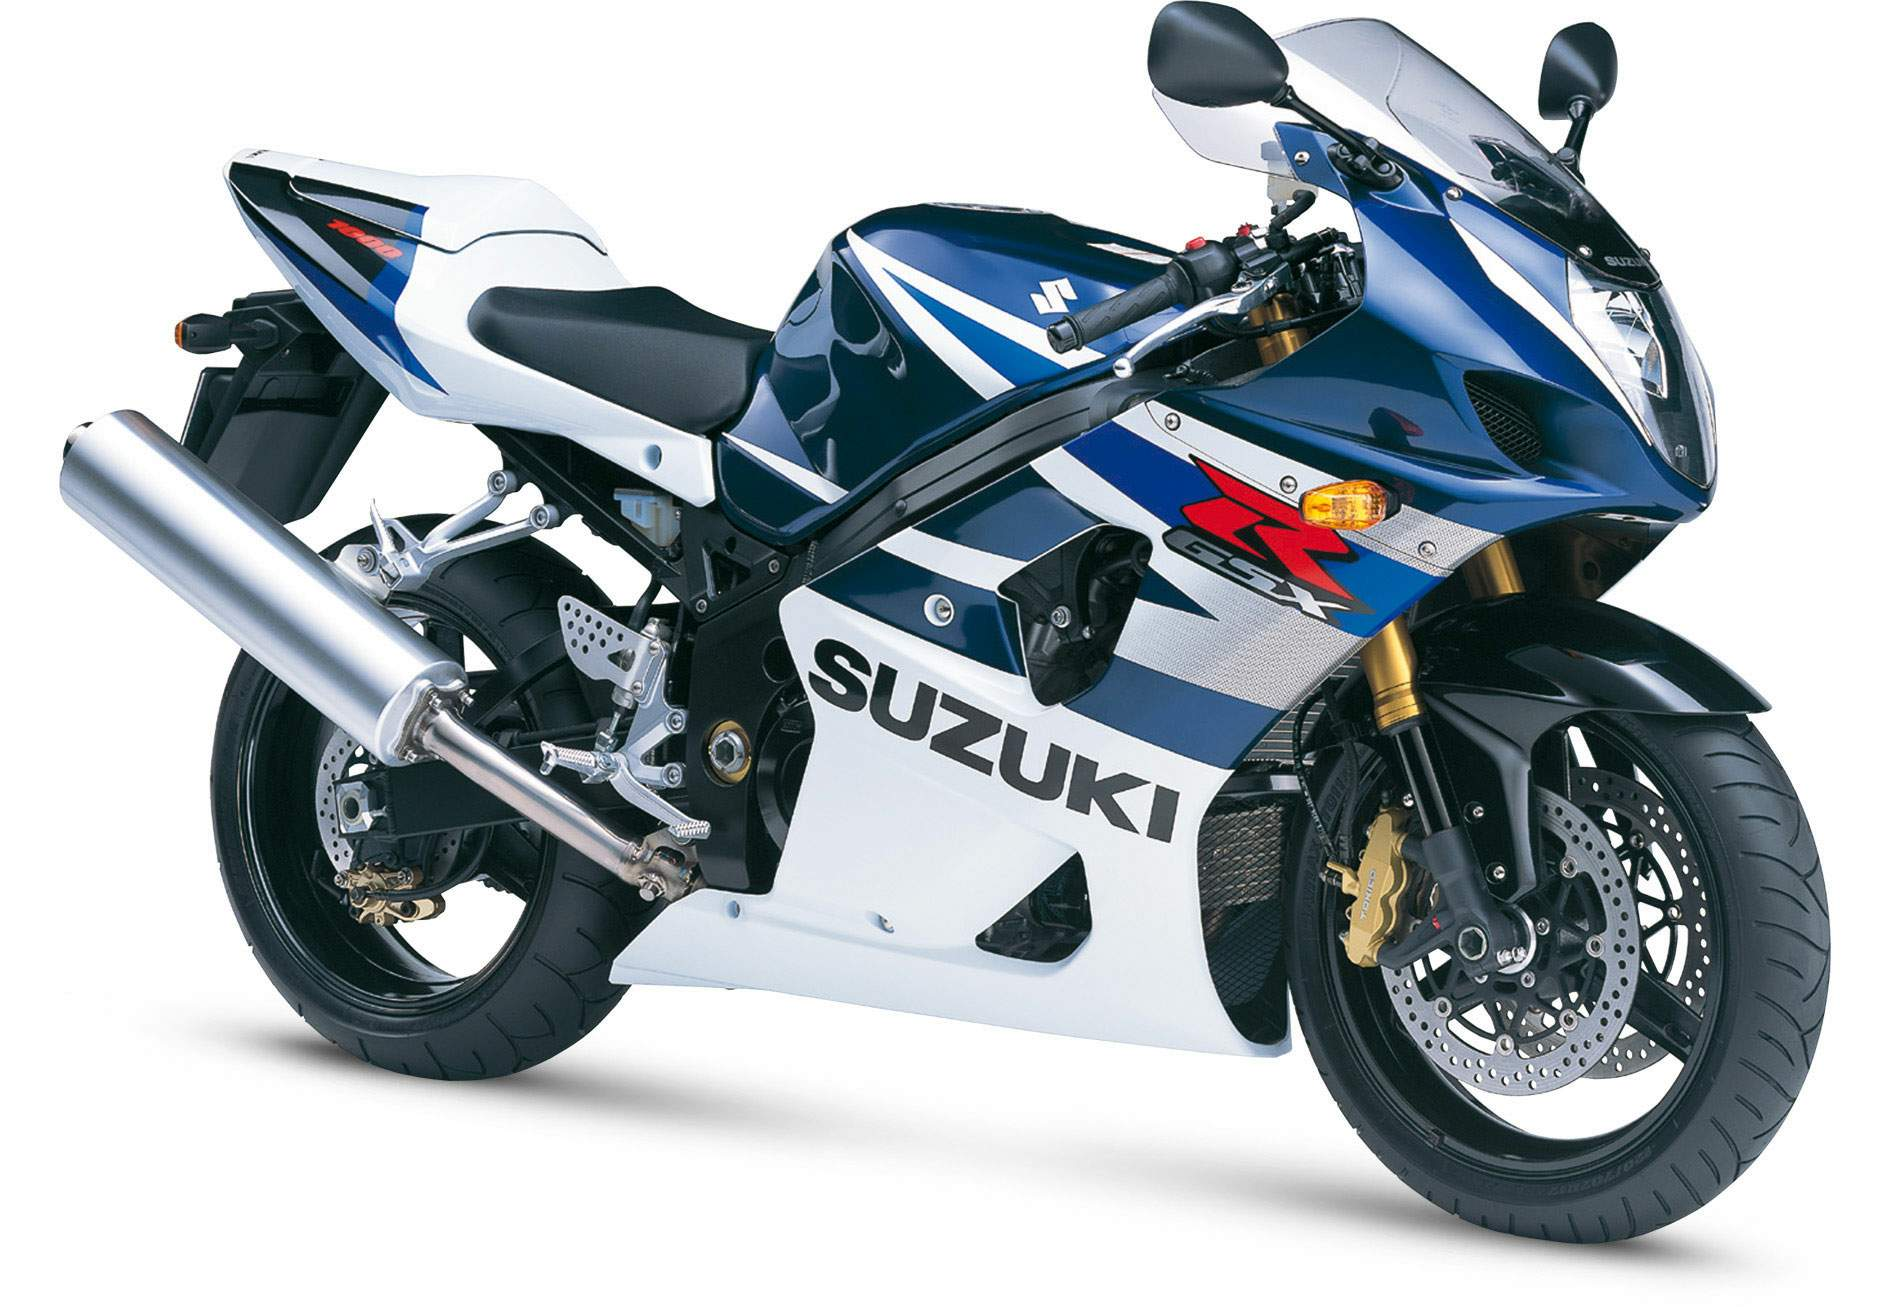 suzuki gsx r 1000 specs 2007 2008 autoevolution. Black Bedroom Furniture Sets. Home Design Ideas